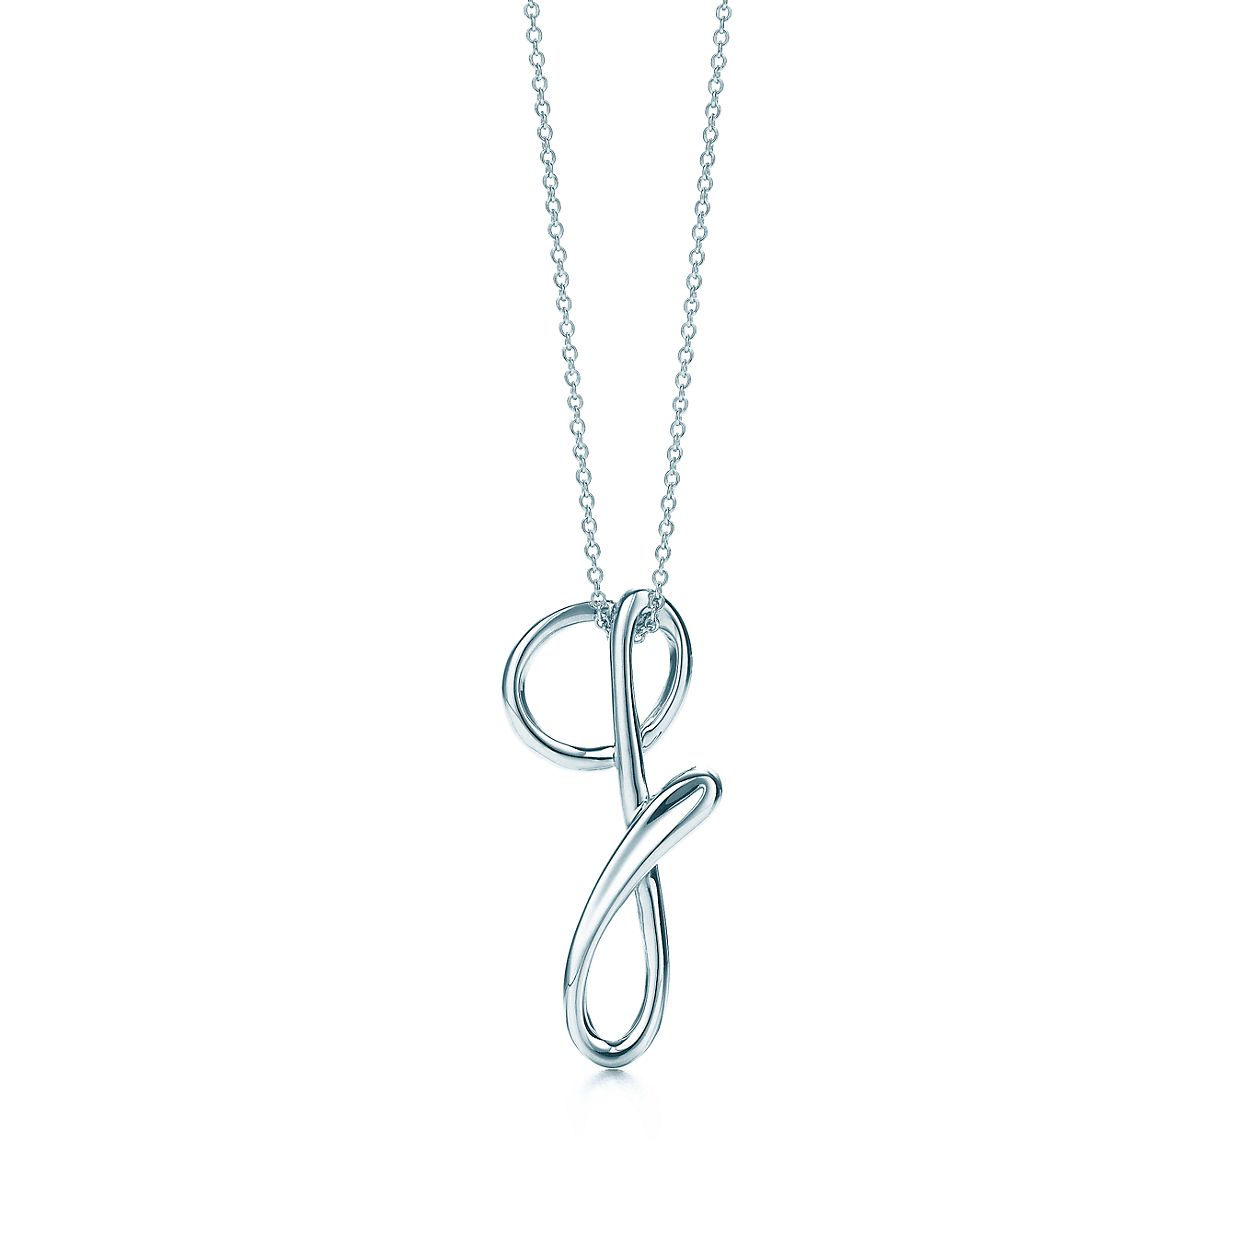 Tiffany Charms alphabet charm in sterling silver Letters A-Z available - Size Q Tiffany & Co. z590J